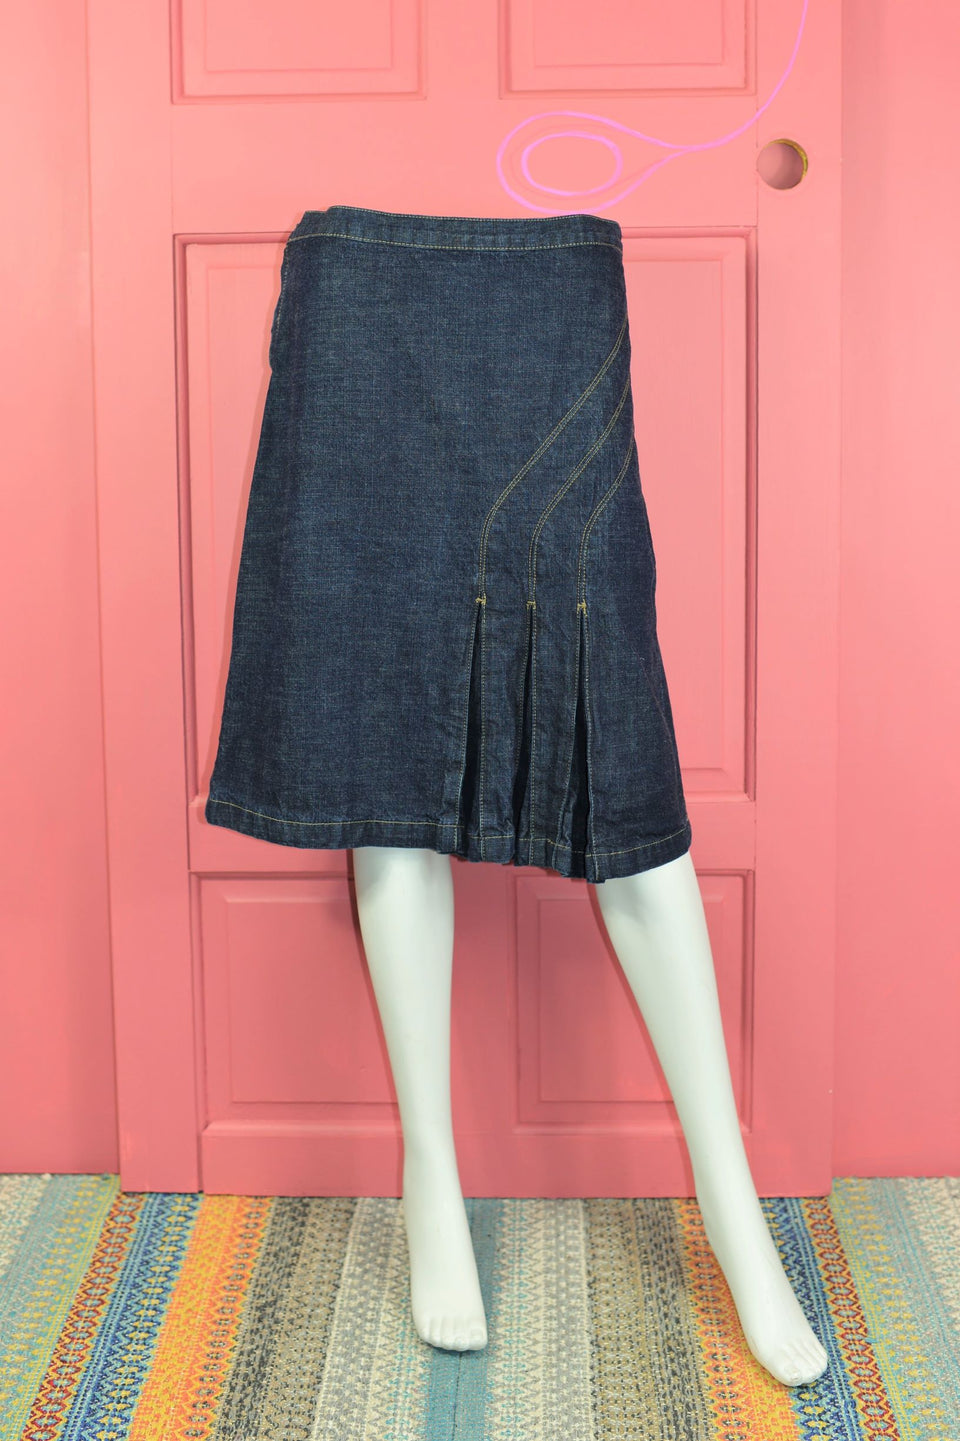 JOHN ROCHA Dark Denim Pleated Mini Skirt, Size 12. Pre-loved.